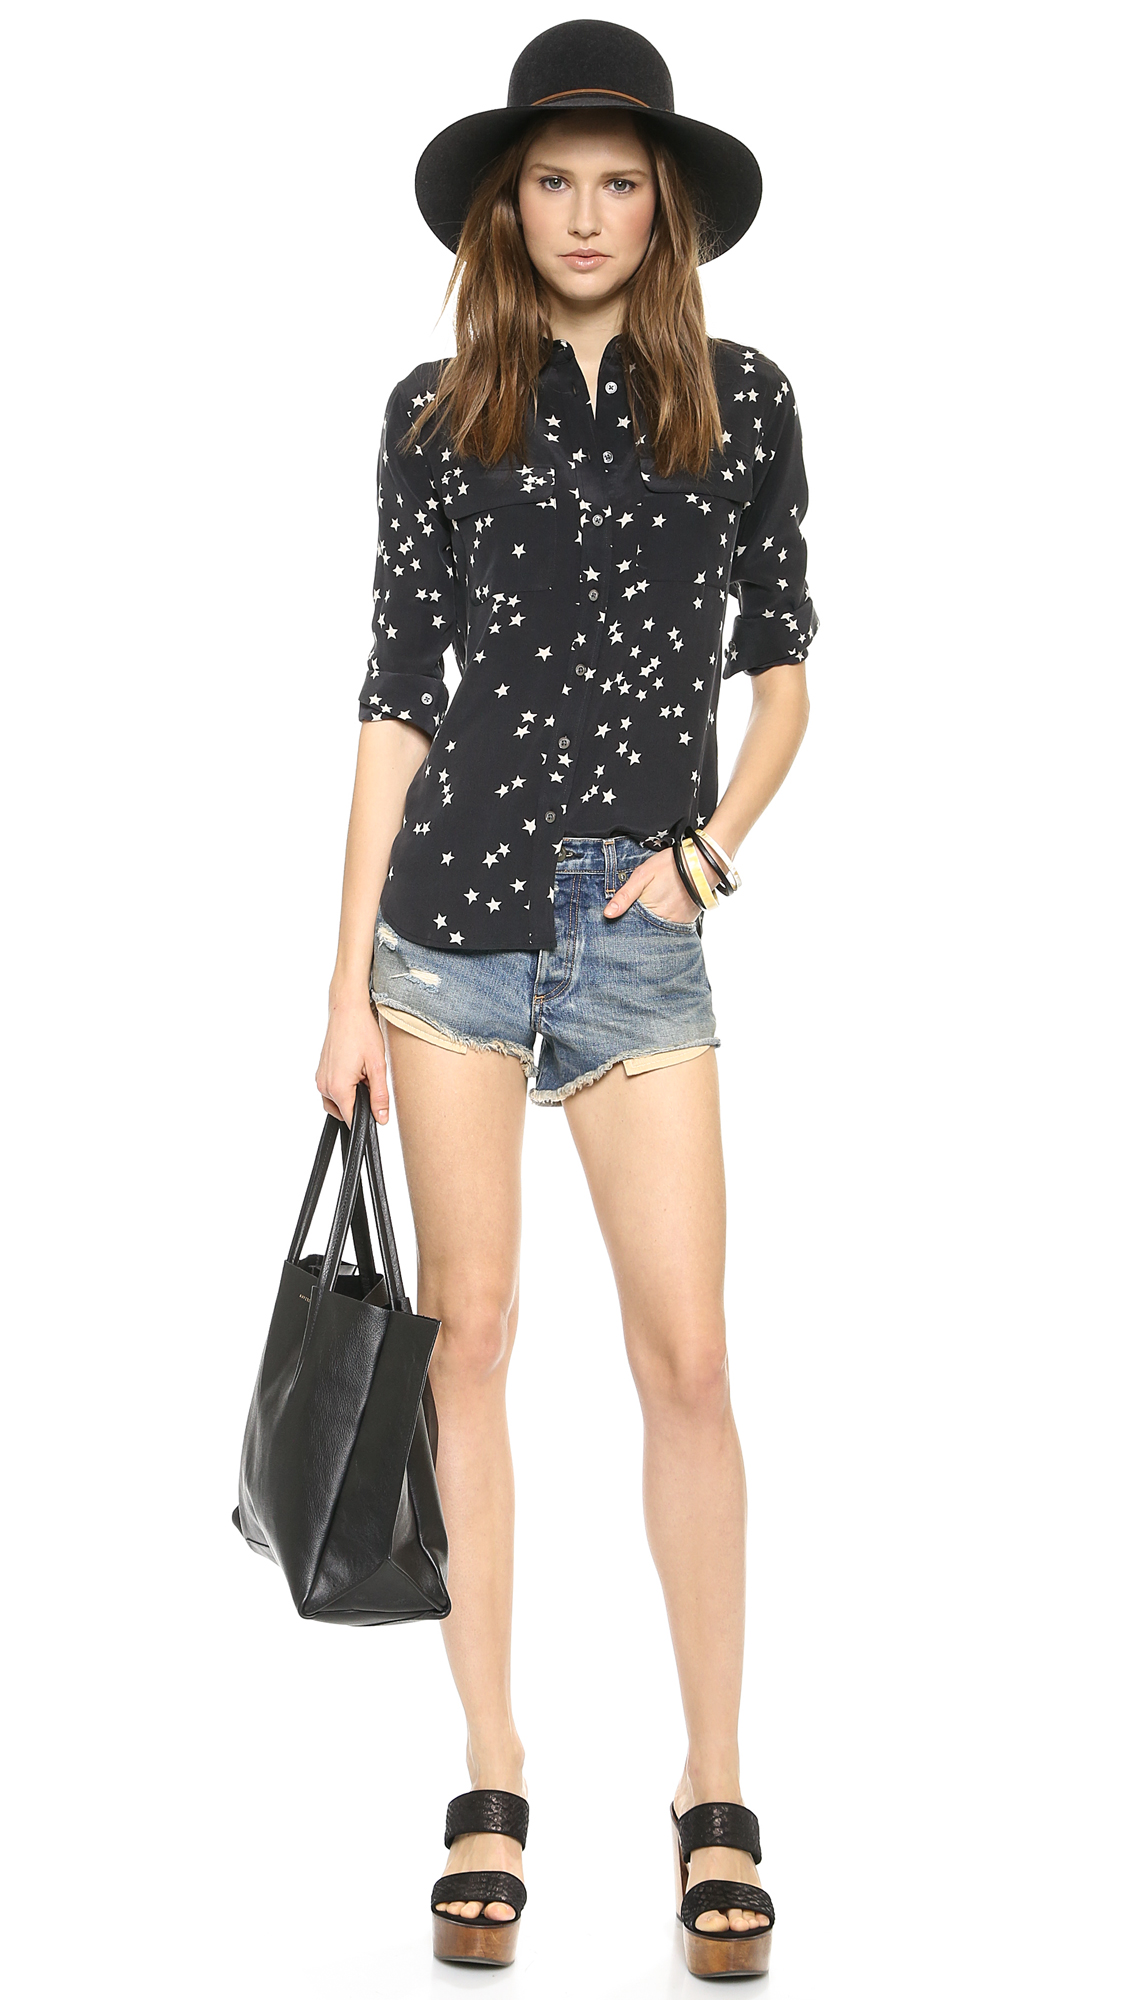 Equipment Slim Signature Blouse | SHOPBOP SAVE 25% use Code:FAMILY25